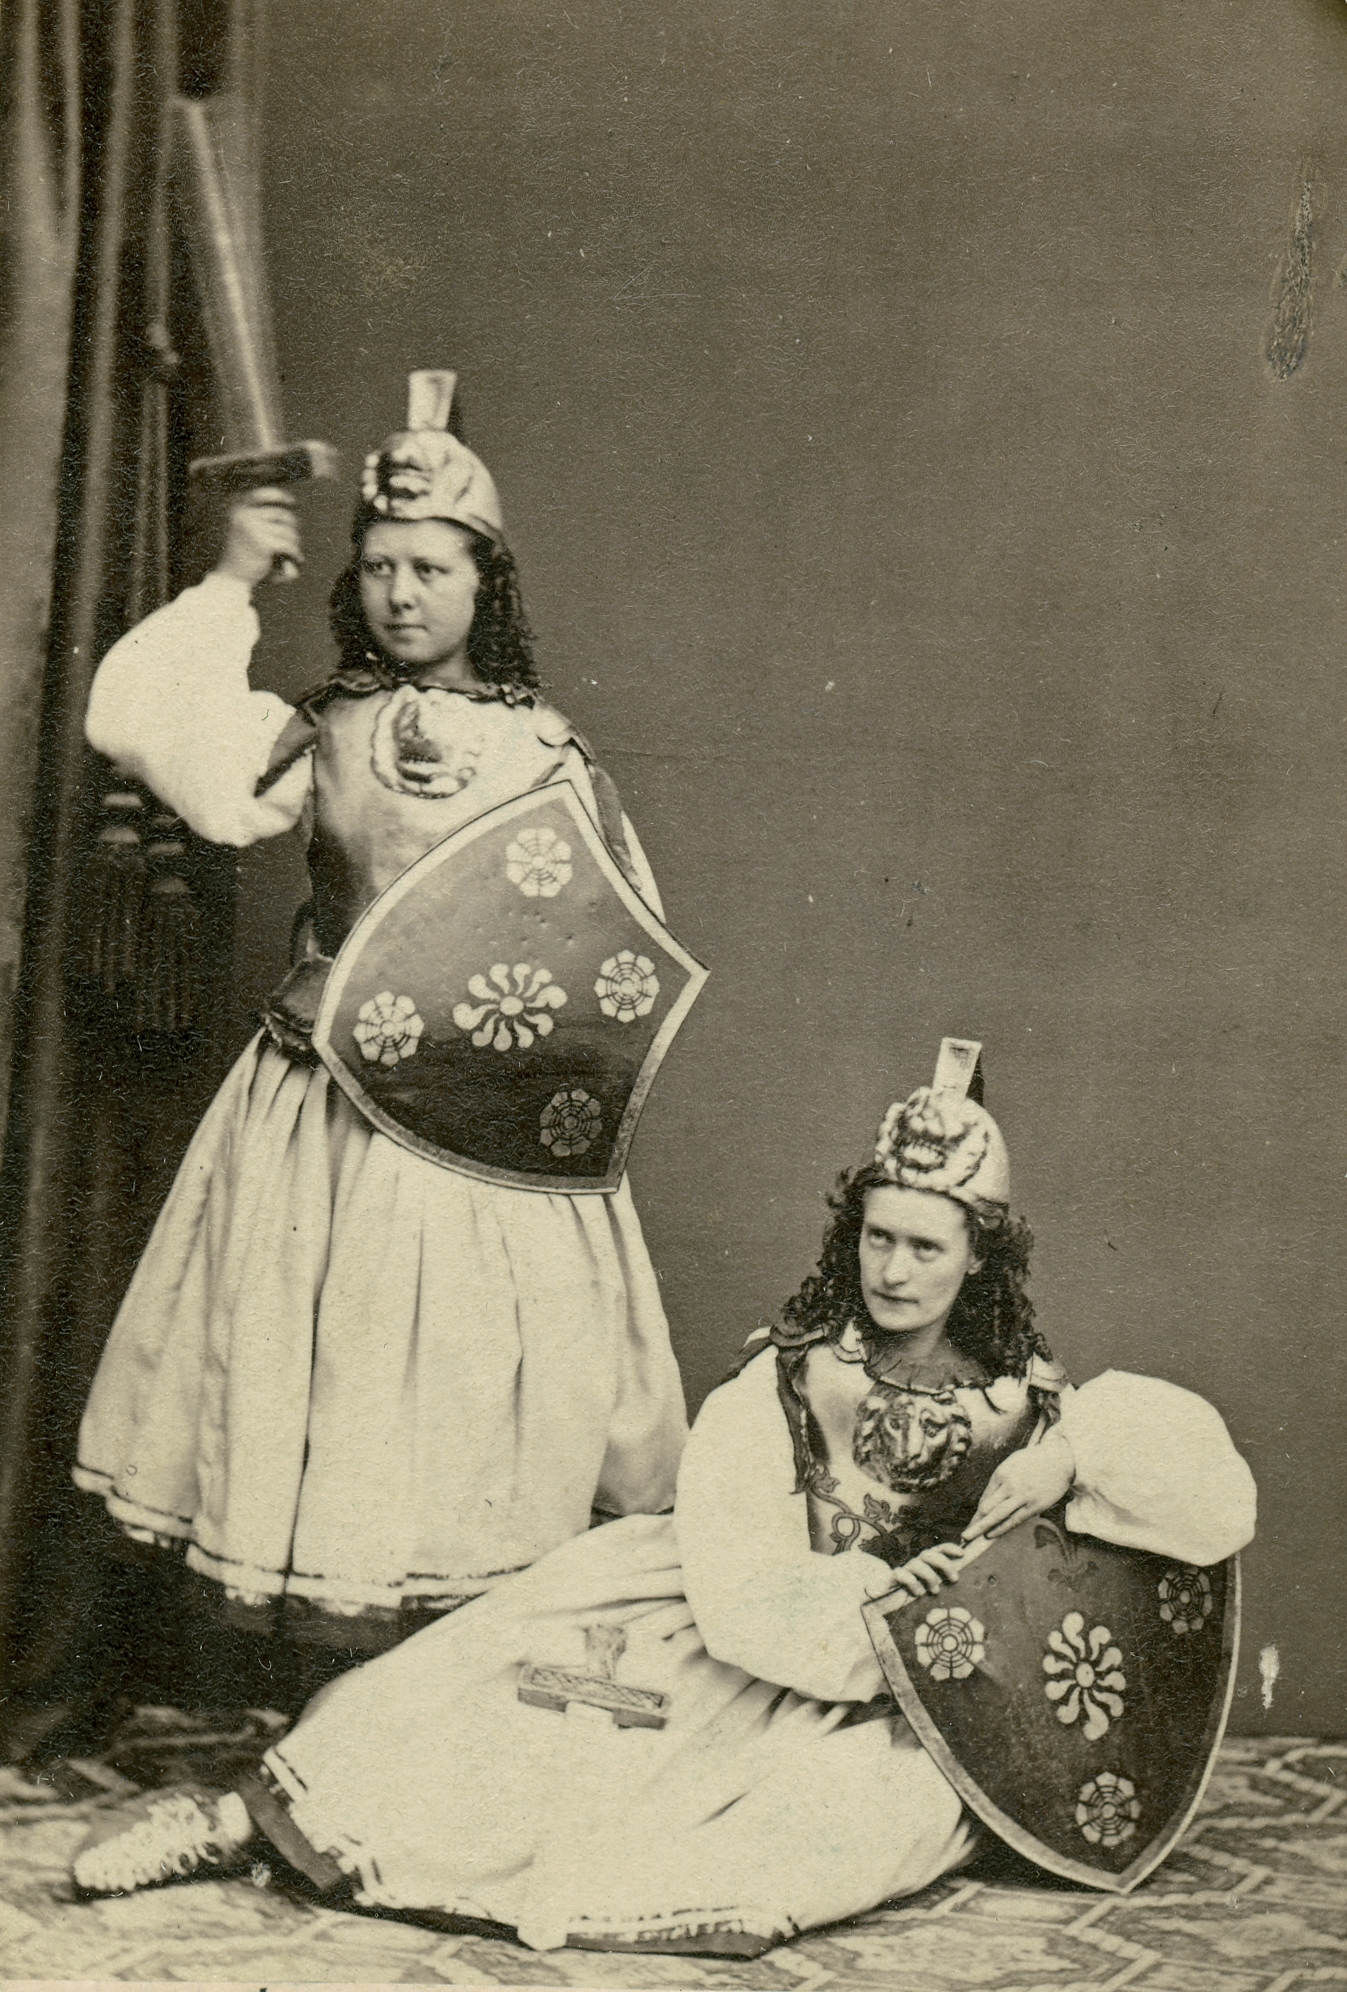 Jenny Hermansson (standing) and Jenny Roos in costume for unknown roles, 1863. Photo: W.A. Eurenius & P.L. Quist (Musik- och teaterbiblioteket, Stockholm)